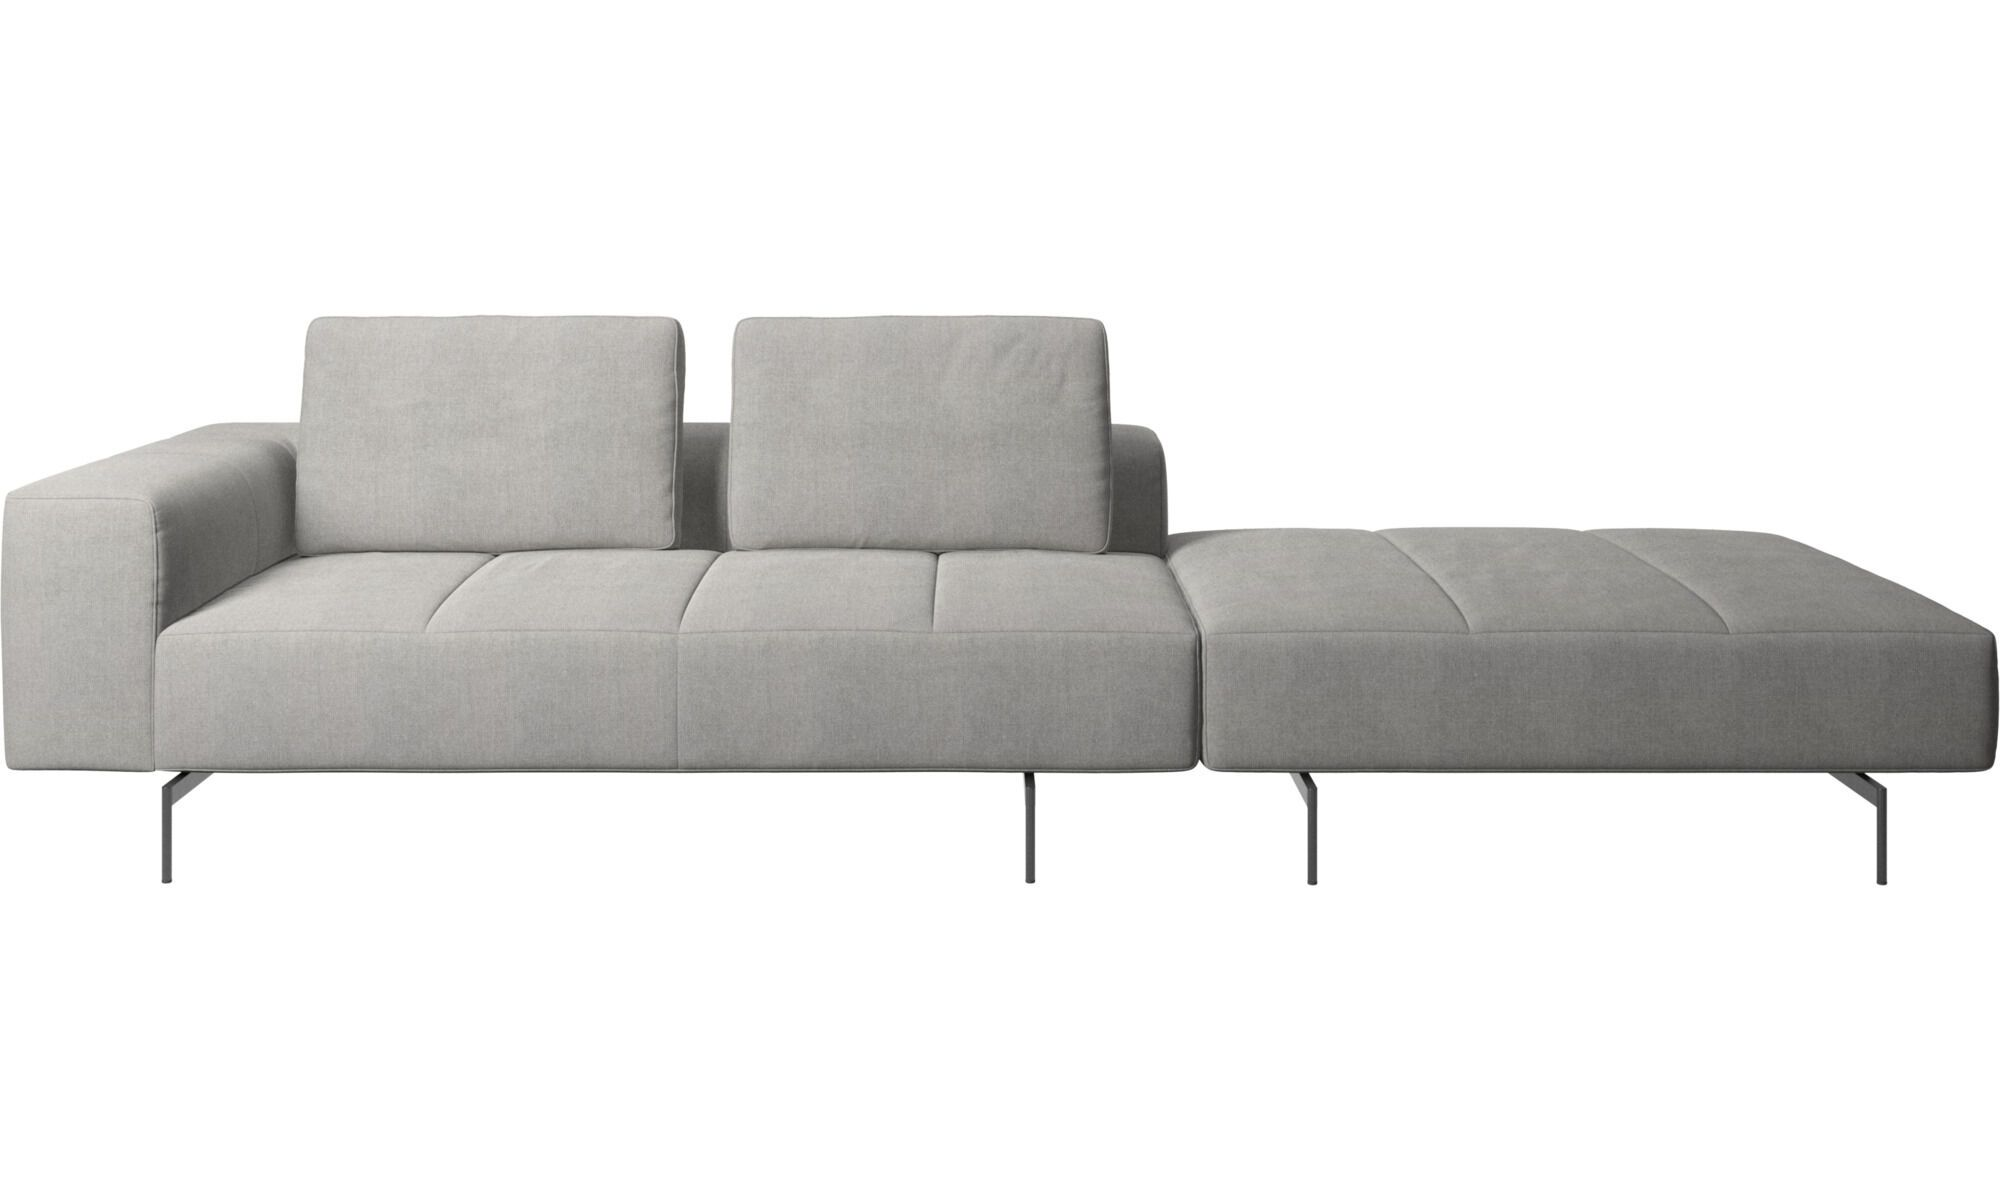 Modular Sofas Amsterdam Sofa With Footstool On Right Side In 2021 Boconcept Sofa Modular Sofa